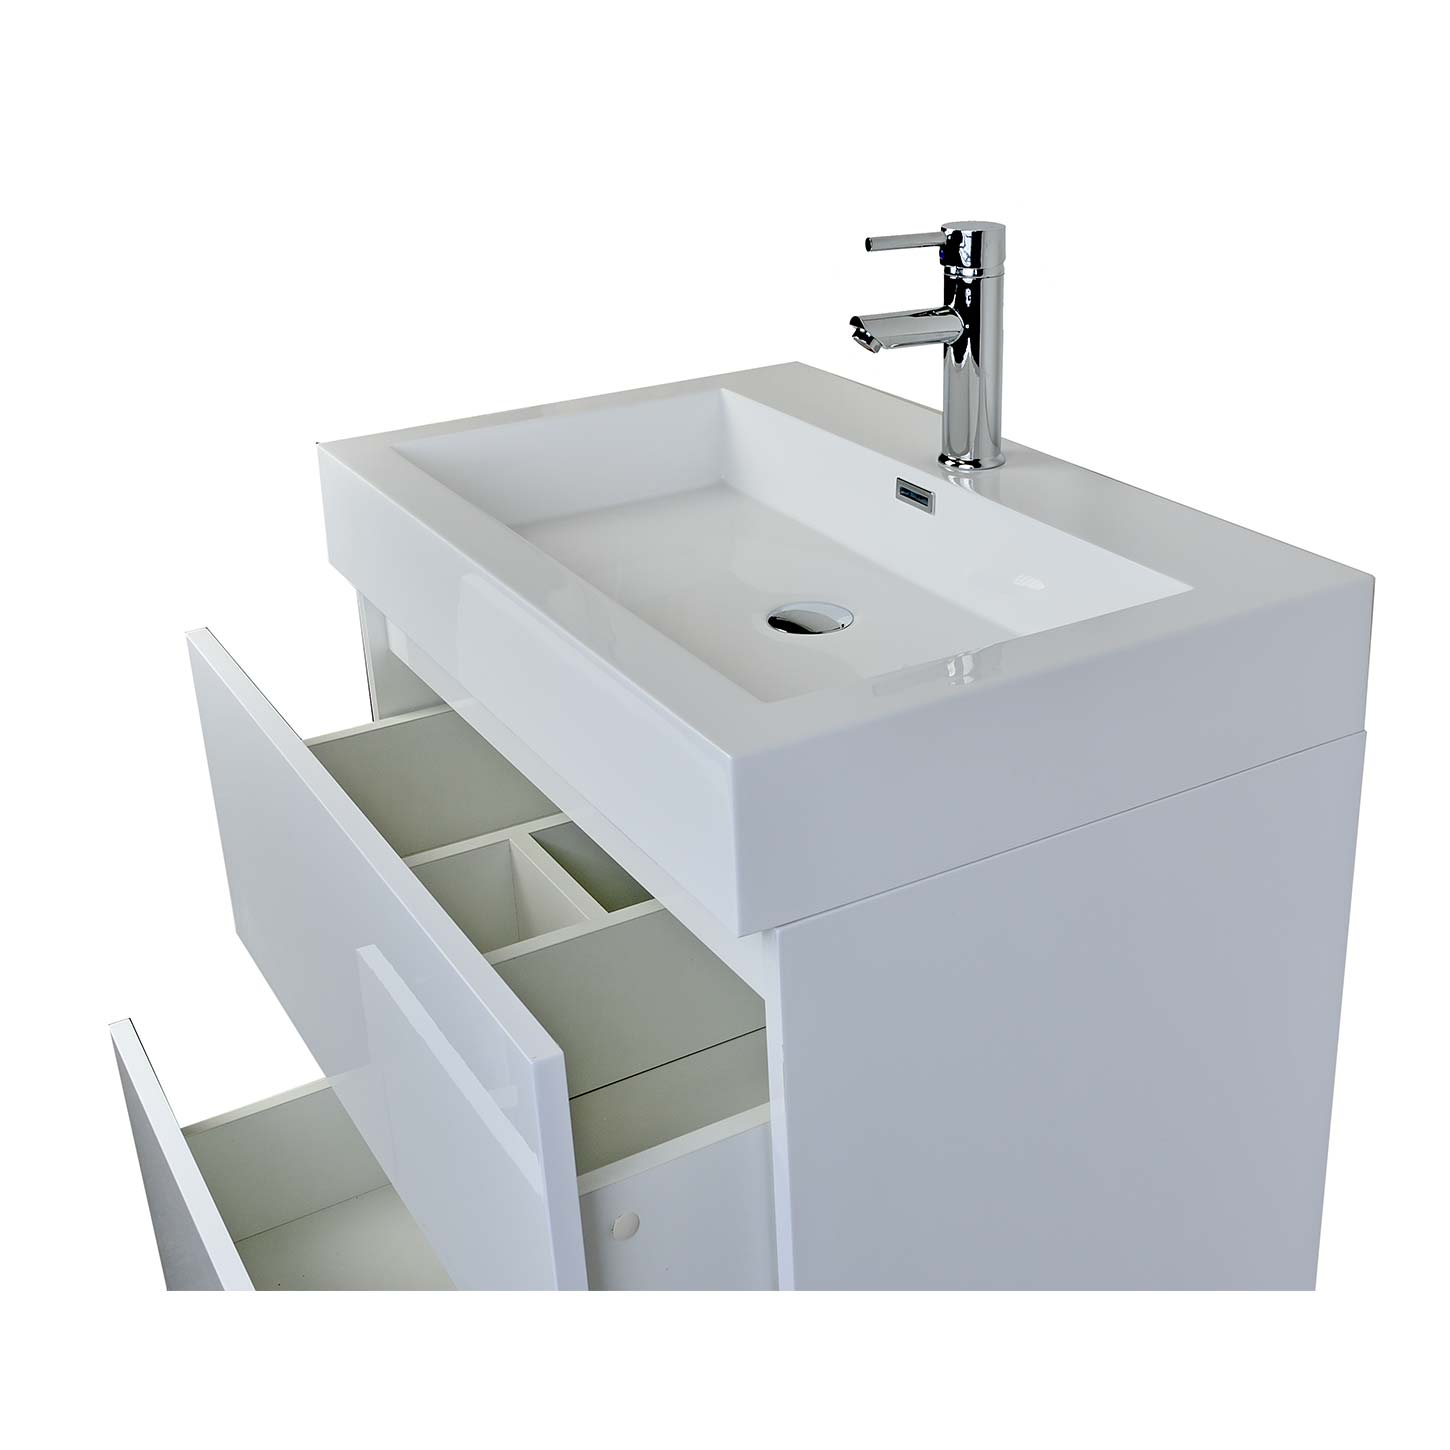 29 5 Contemporary Bathroom Vanity In High Gloss White Tn Ly750 Hgw